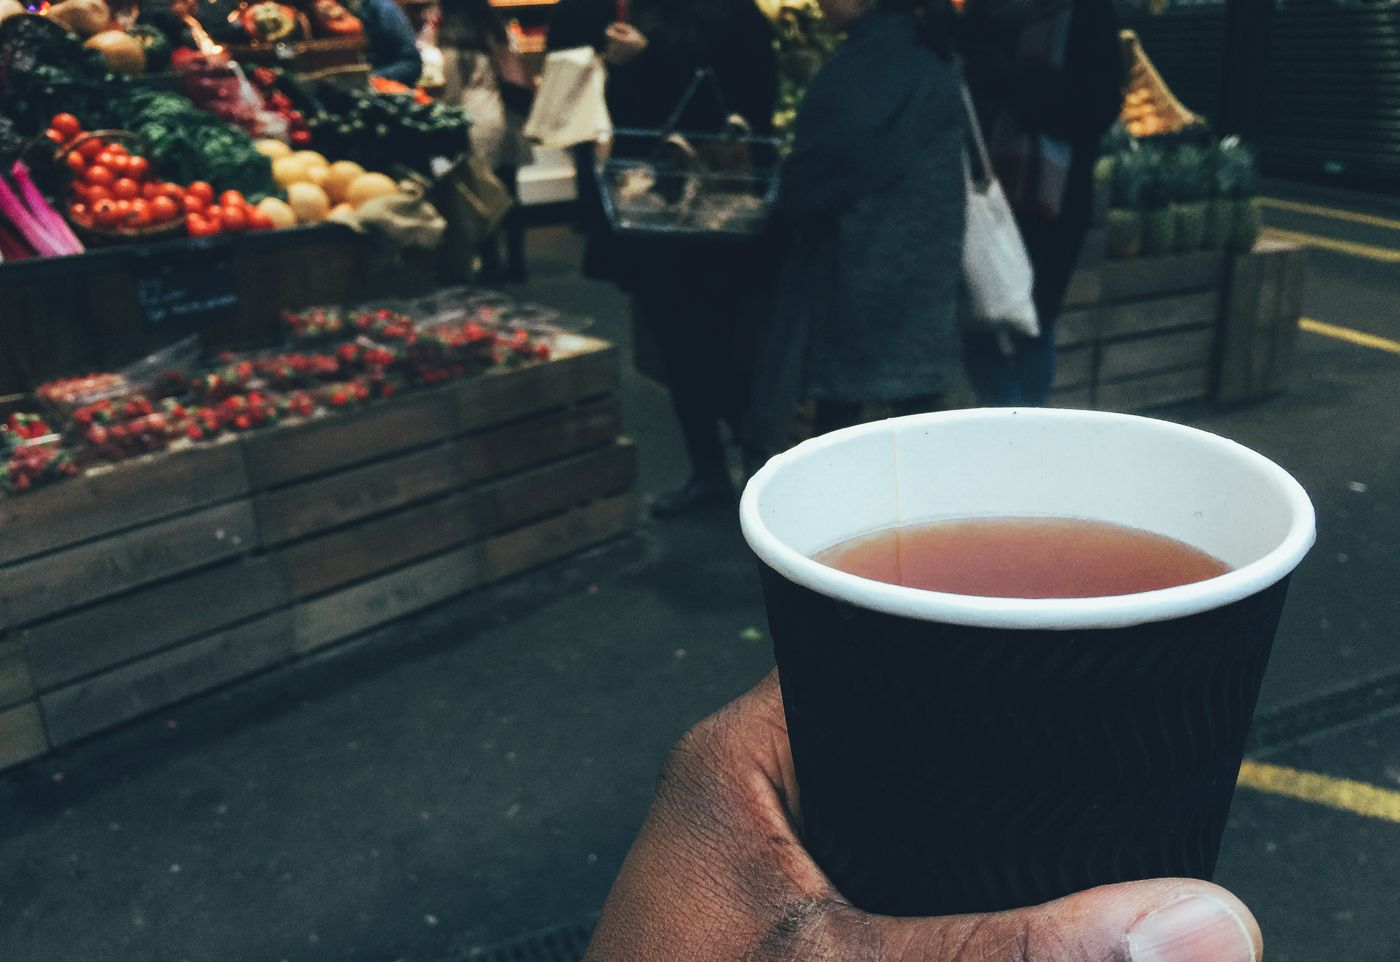 Hog Rolls and Hot Cider in Borough Market, London (12)